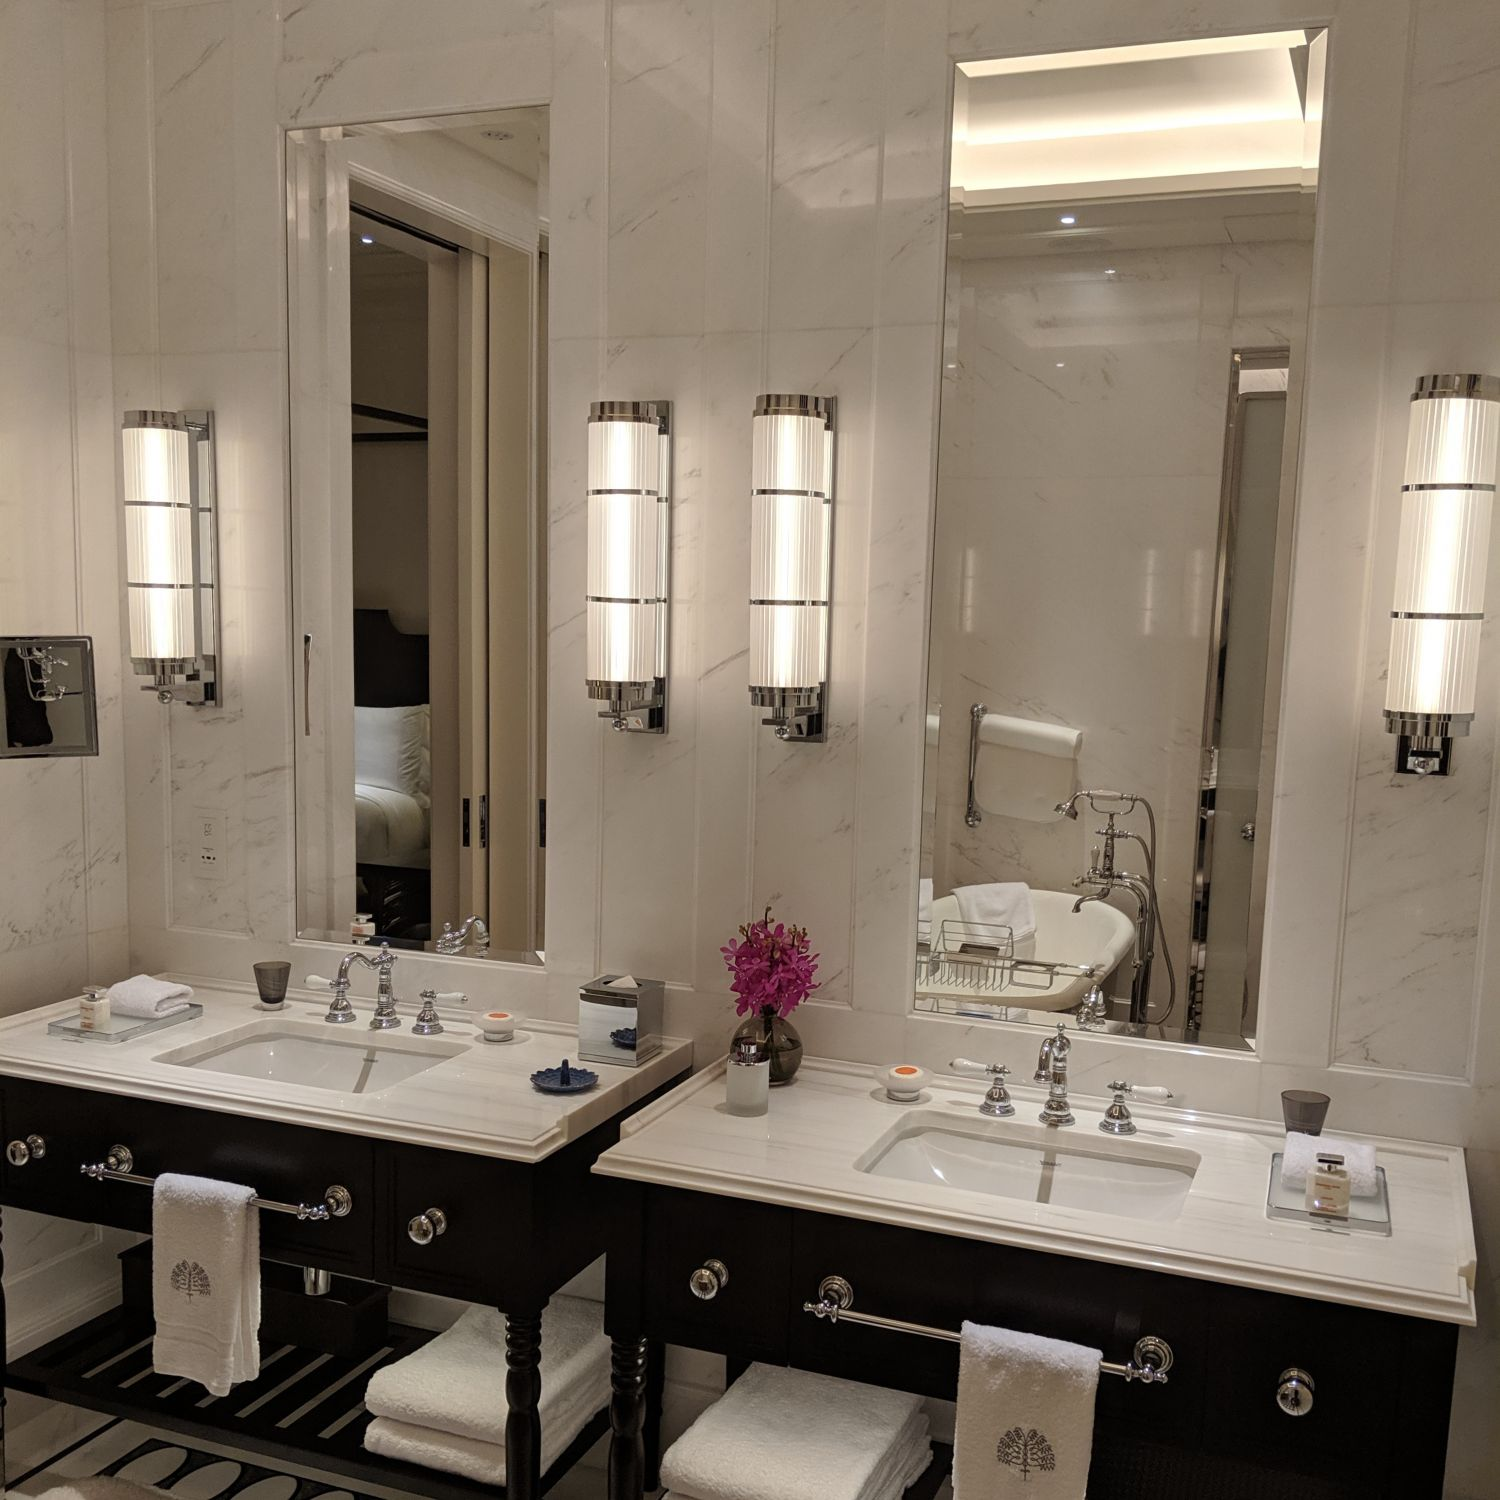 raffles hotel singapore palm court suite bathroom